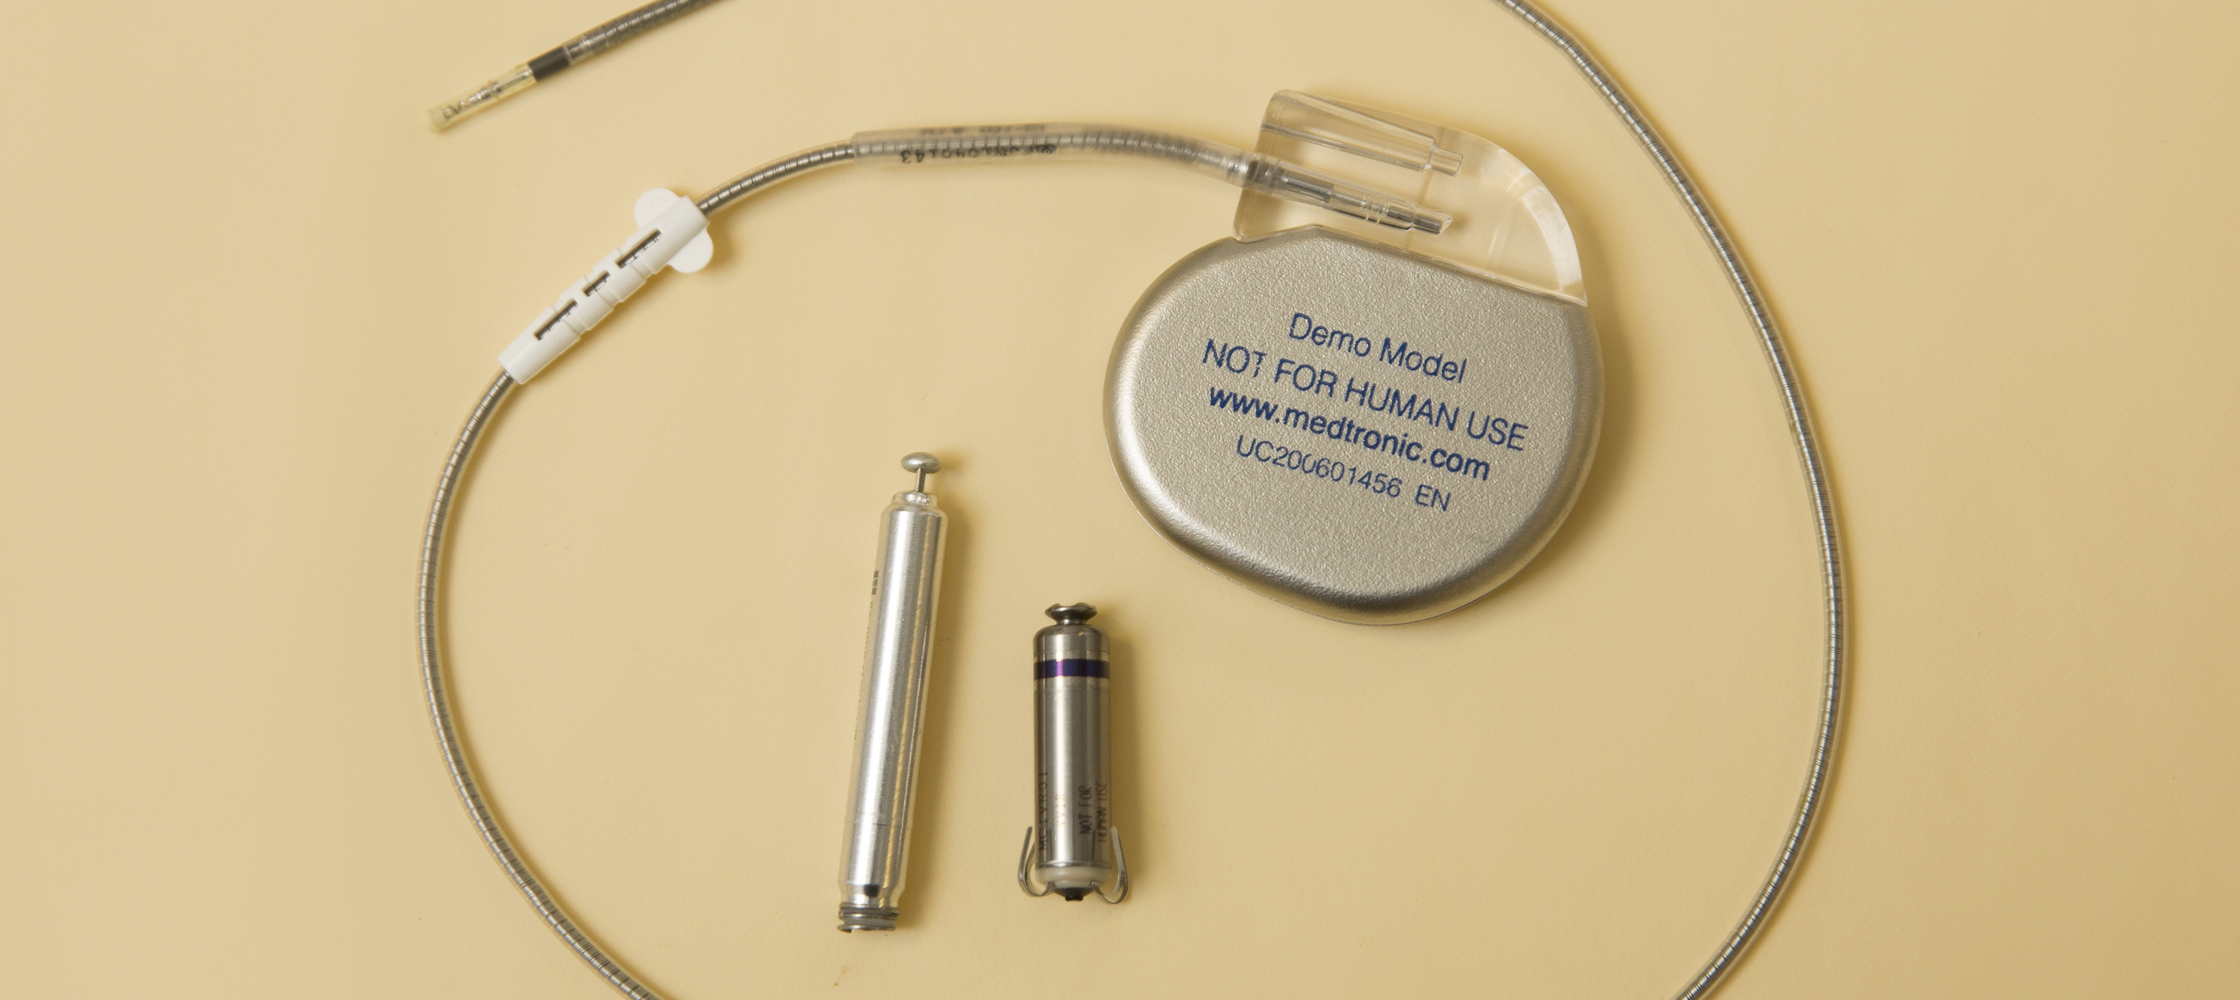 Smaller pacemakers eliminate painful surgical incisions and wires to connect the devices to the heart